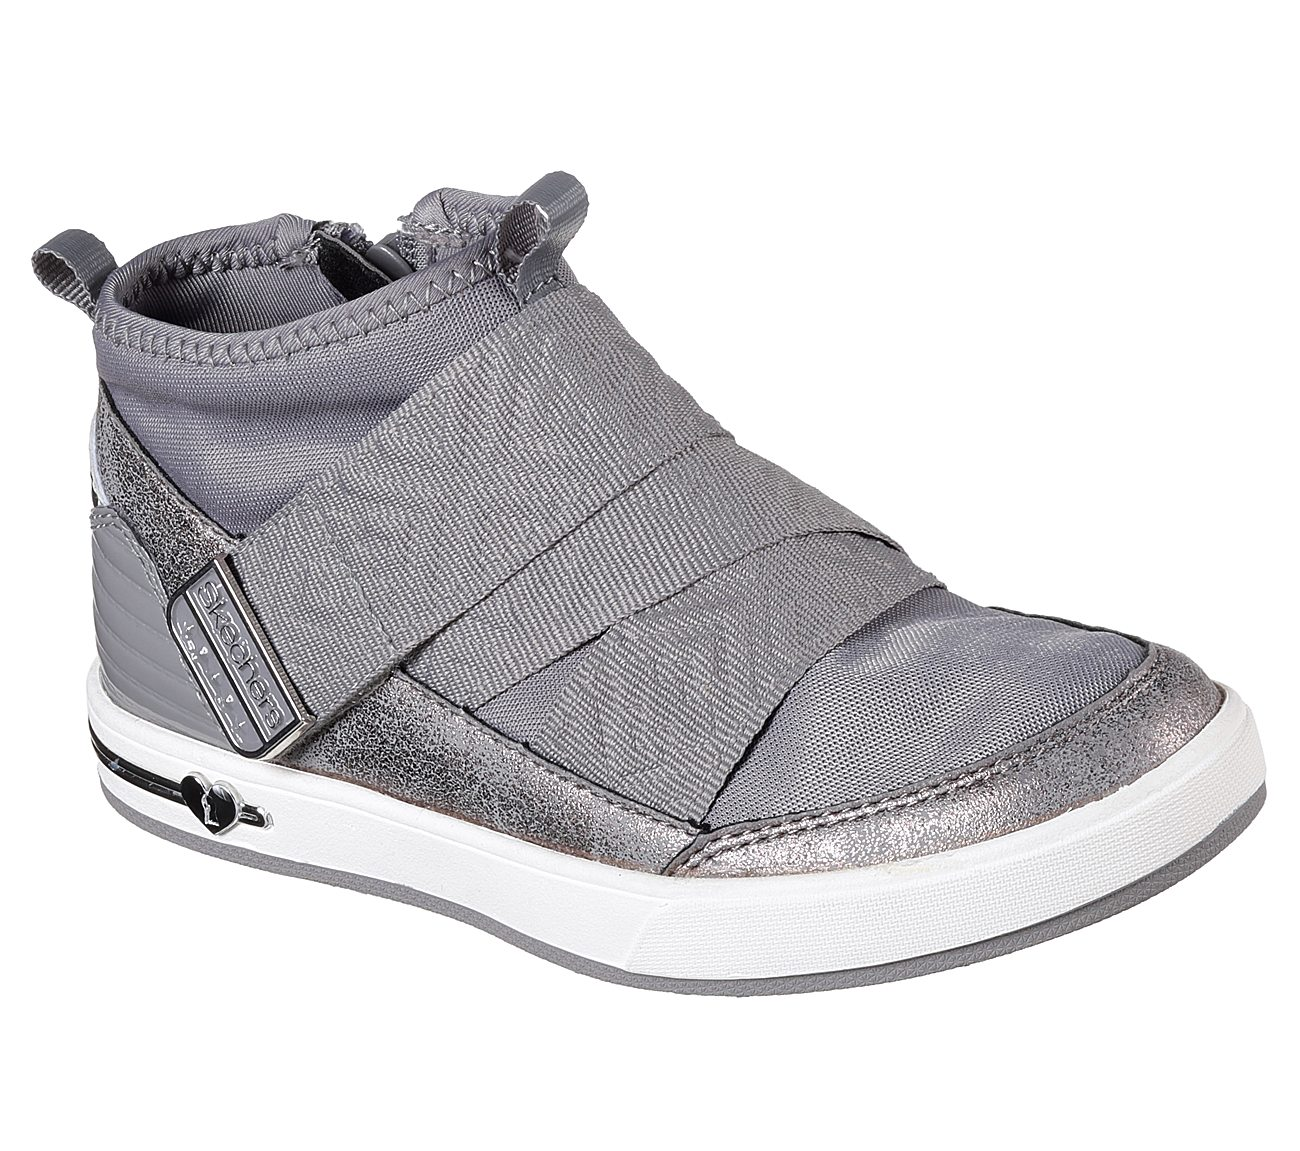 fe7fdbc76f0a Buy SKECHERS Shoutouts Comfort Shoes Shoes only  37.00